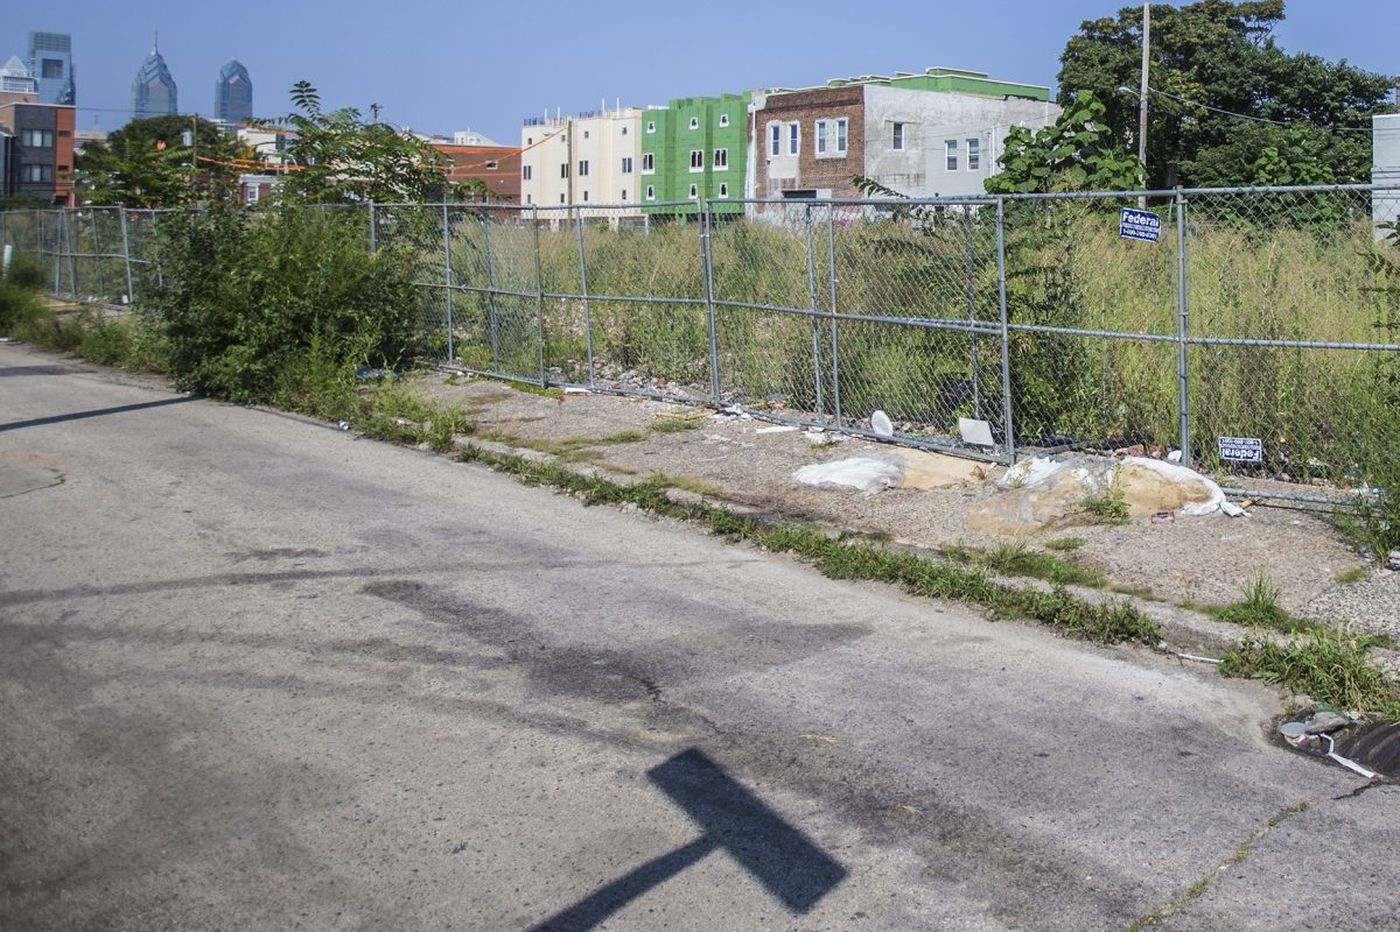 Gentrification fight in Point Breeze pivots to parking spaces